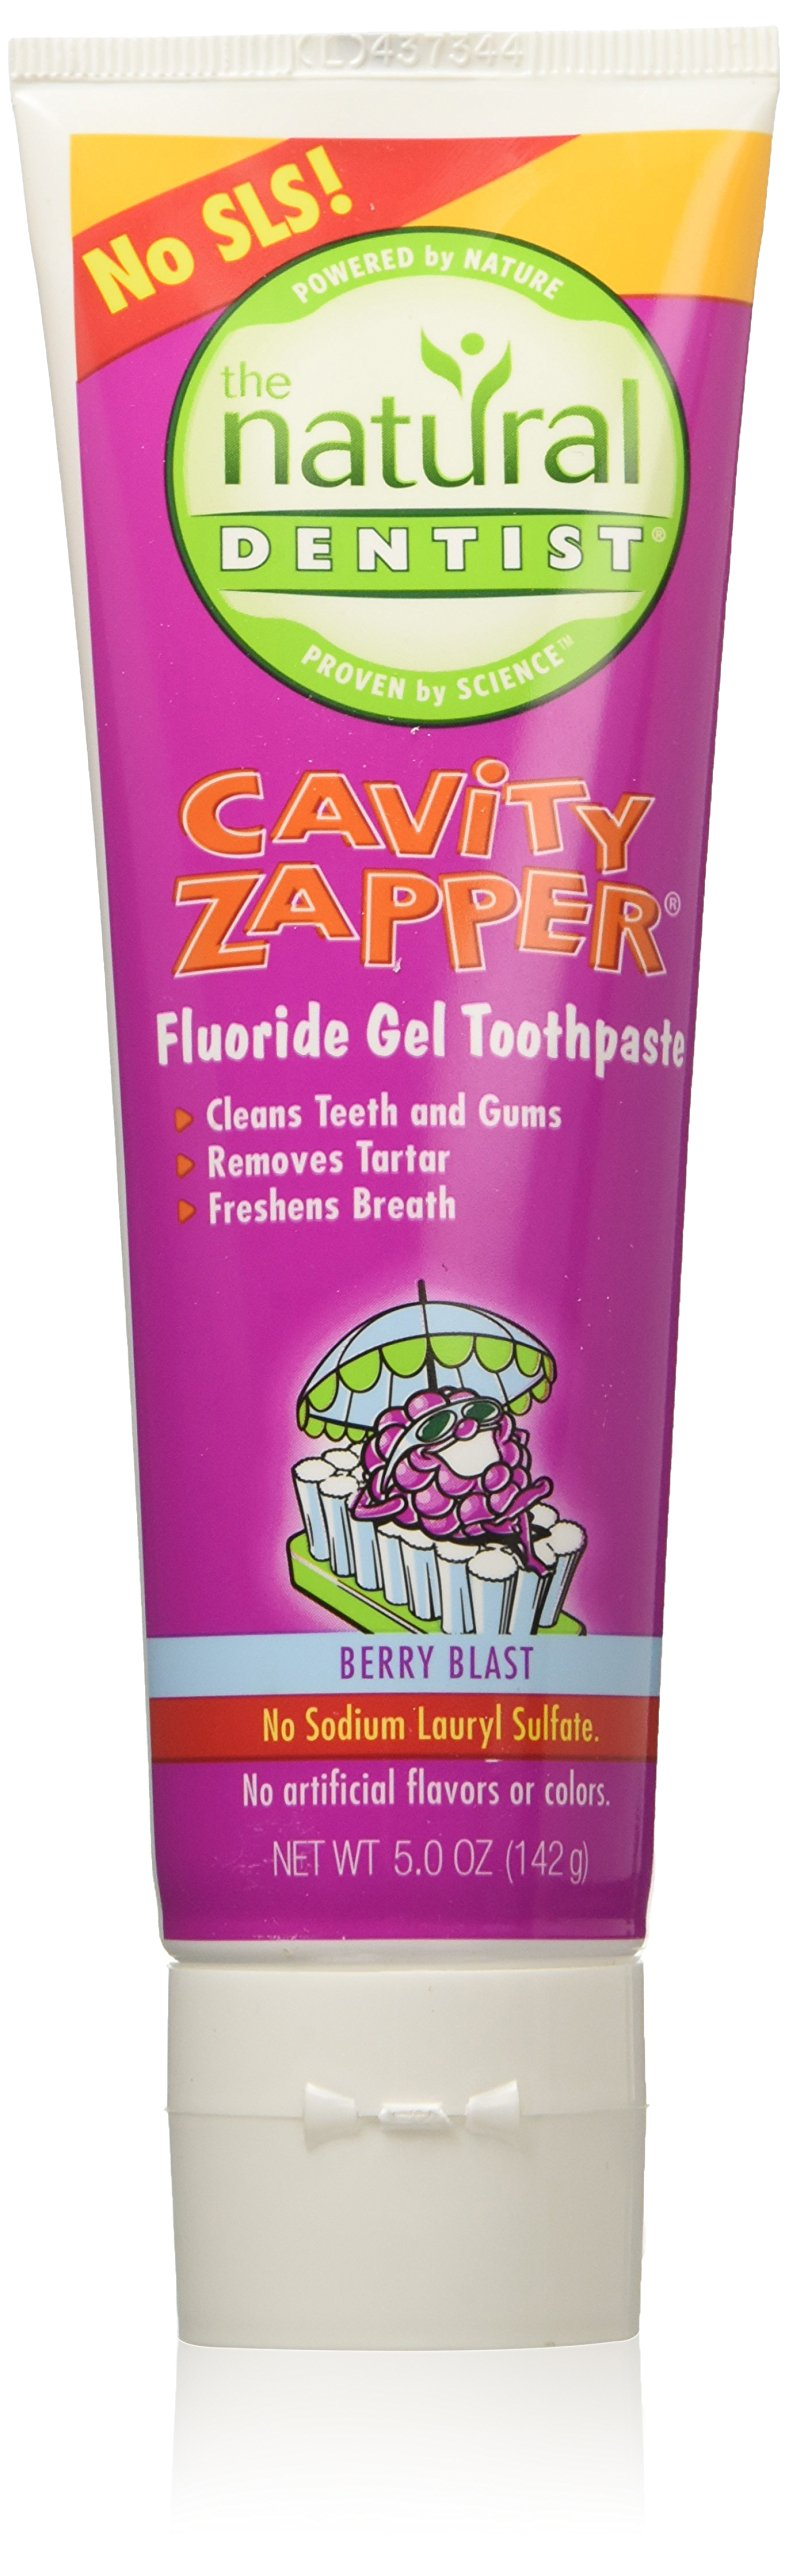 natural dentist cavity zapper reviews